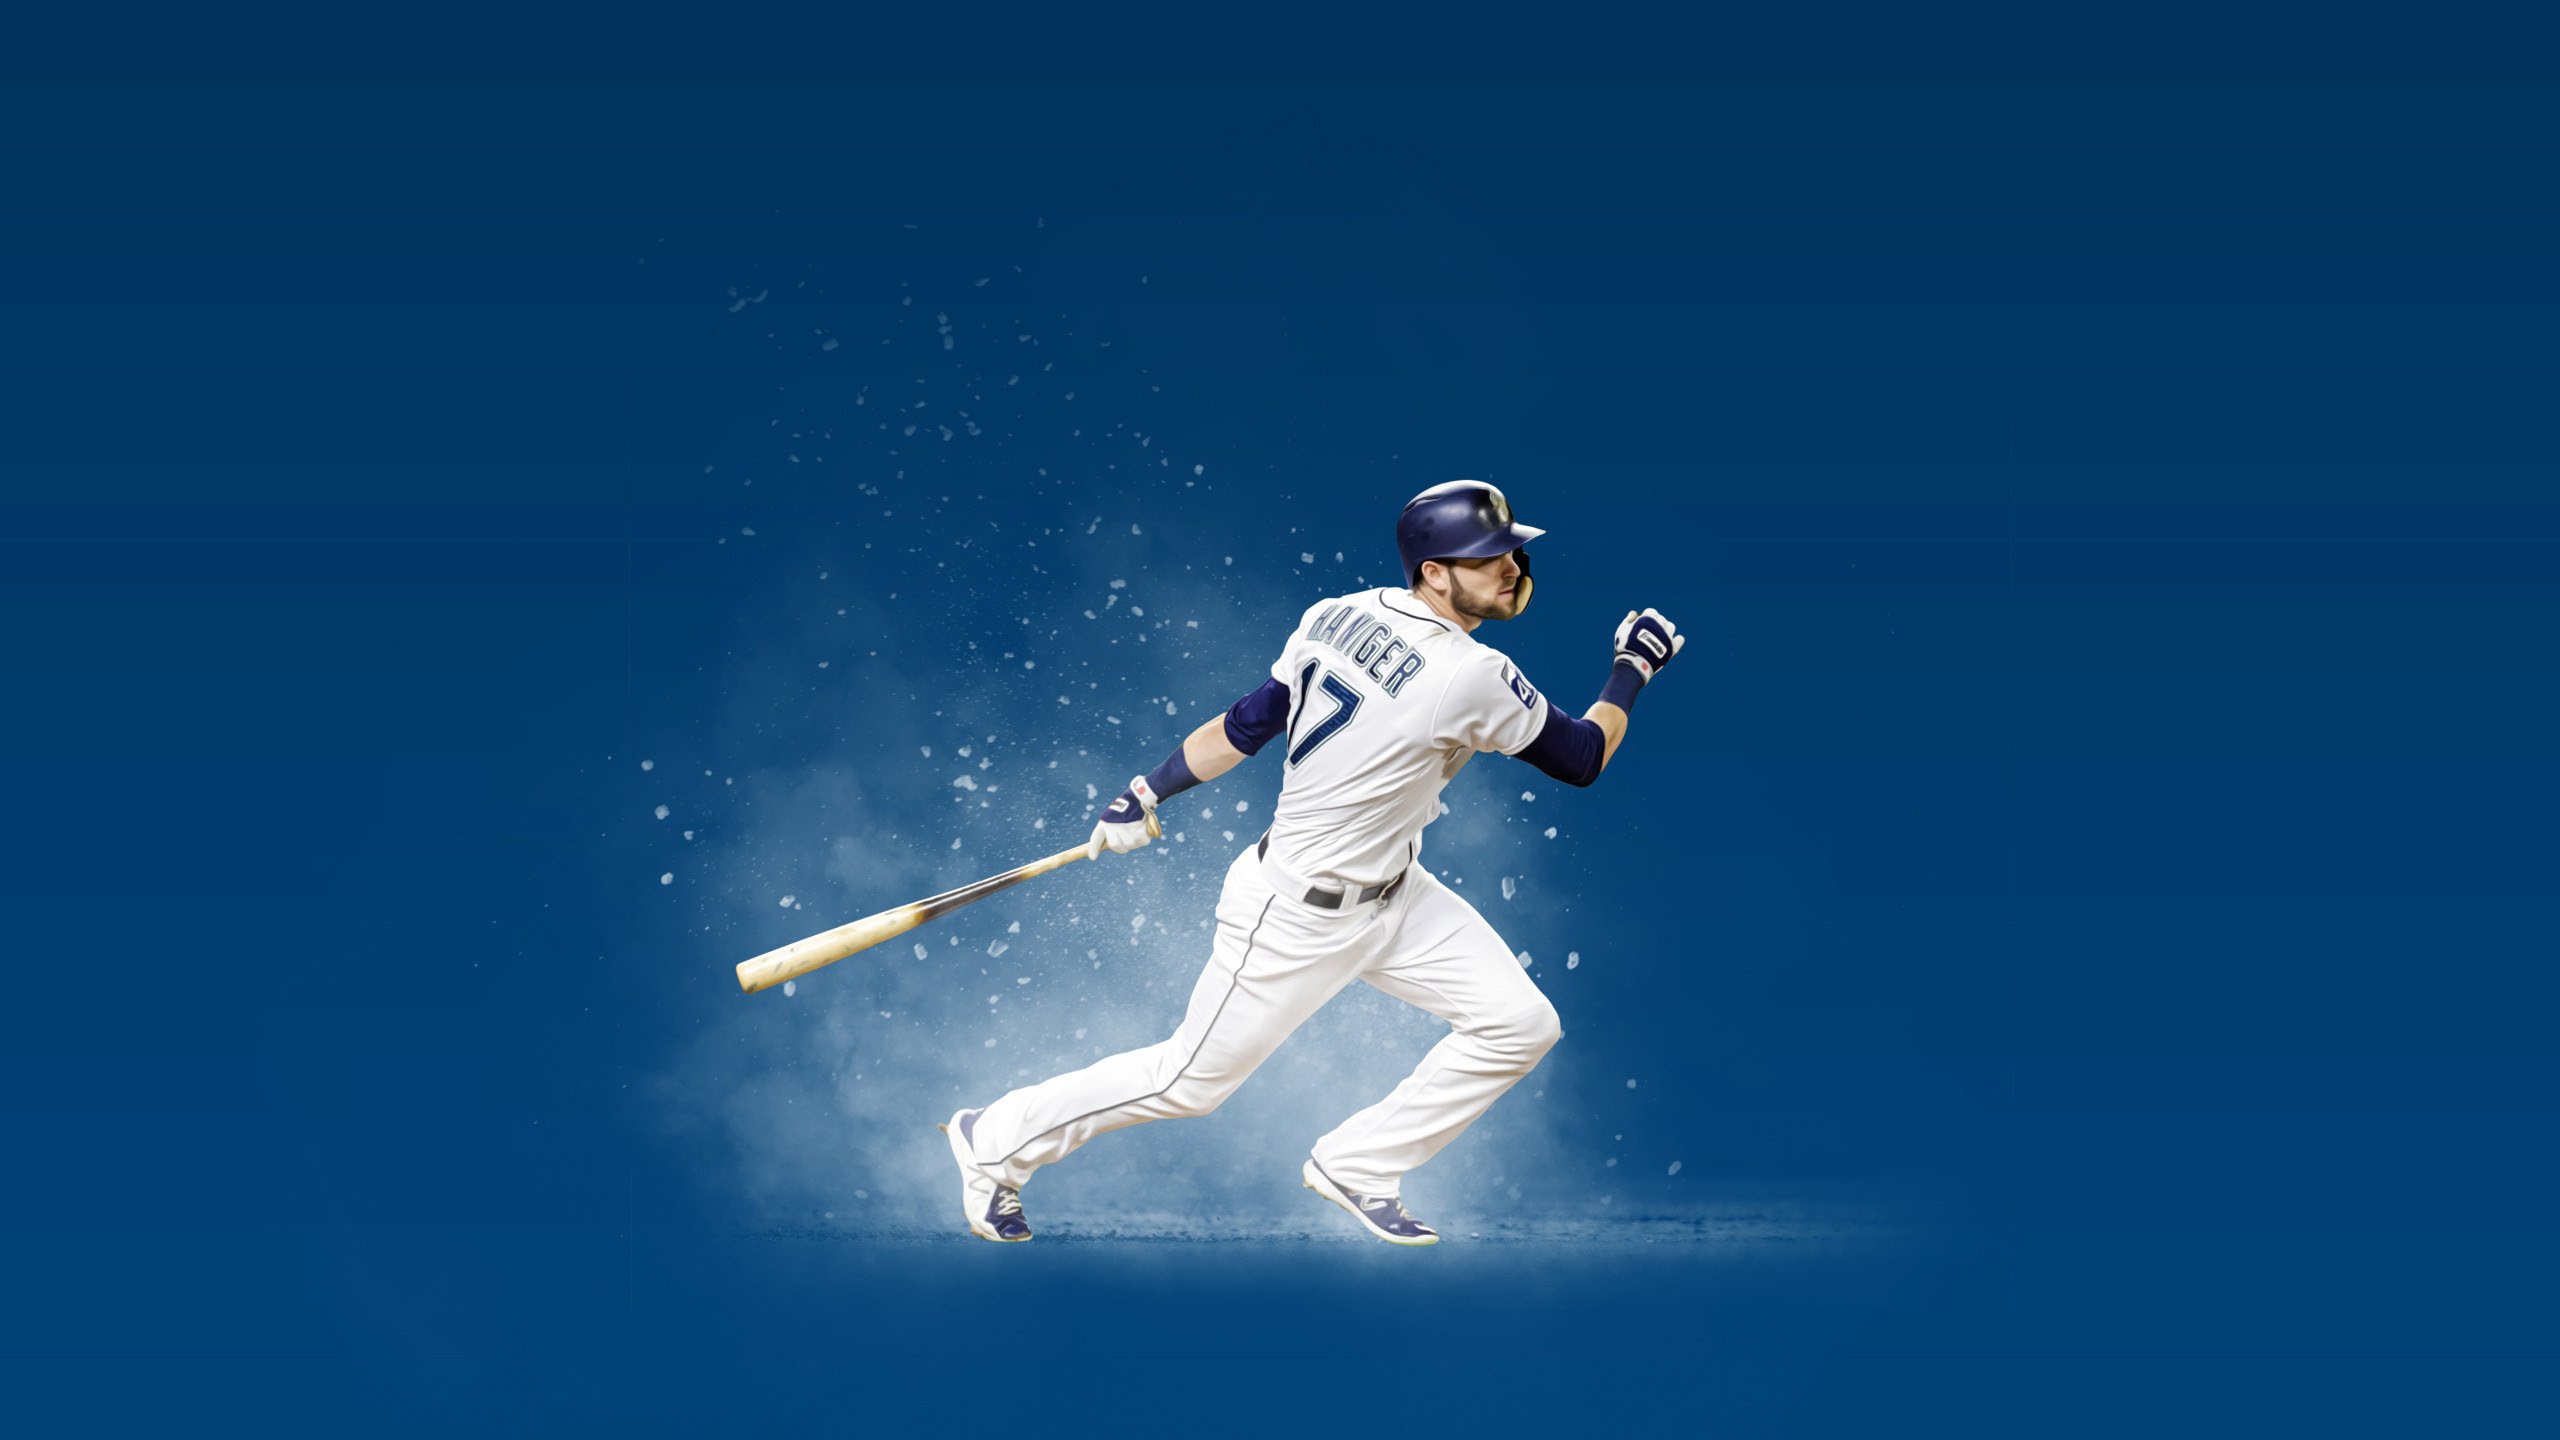 Mlb Player Wallpapers 76 Images